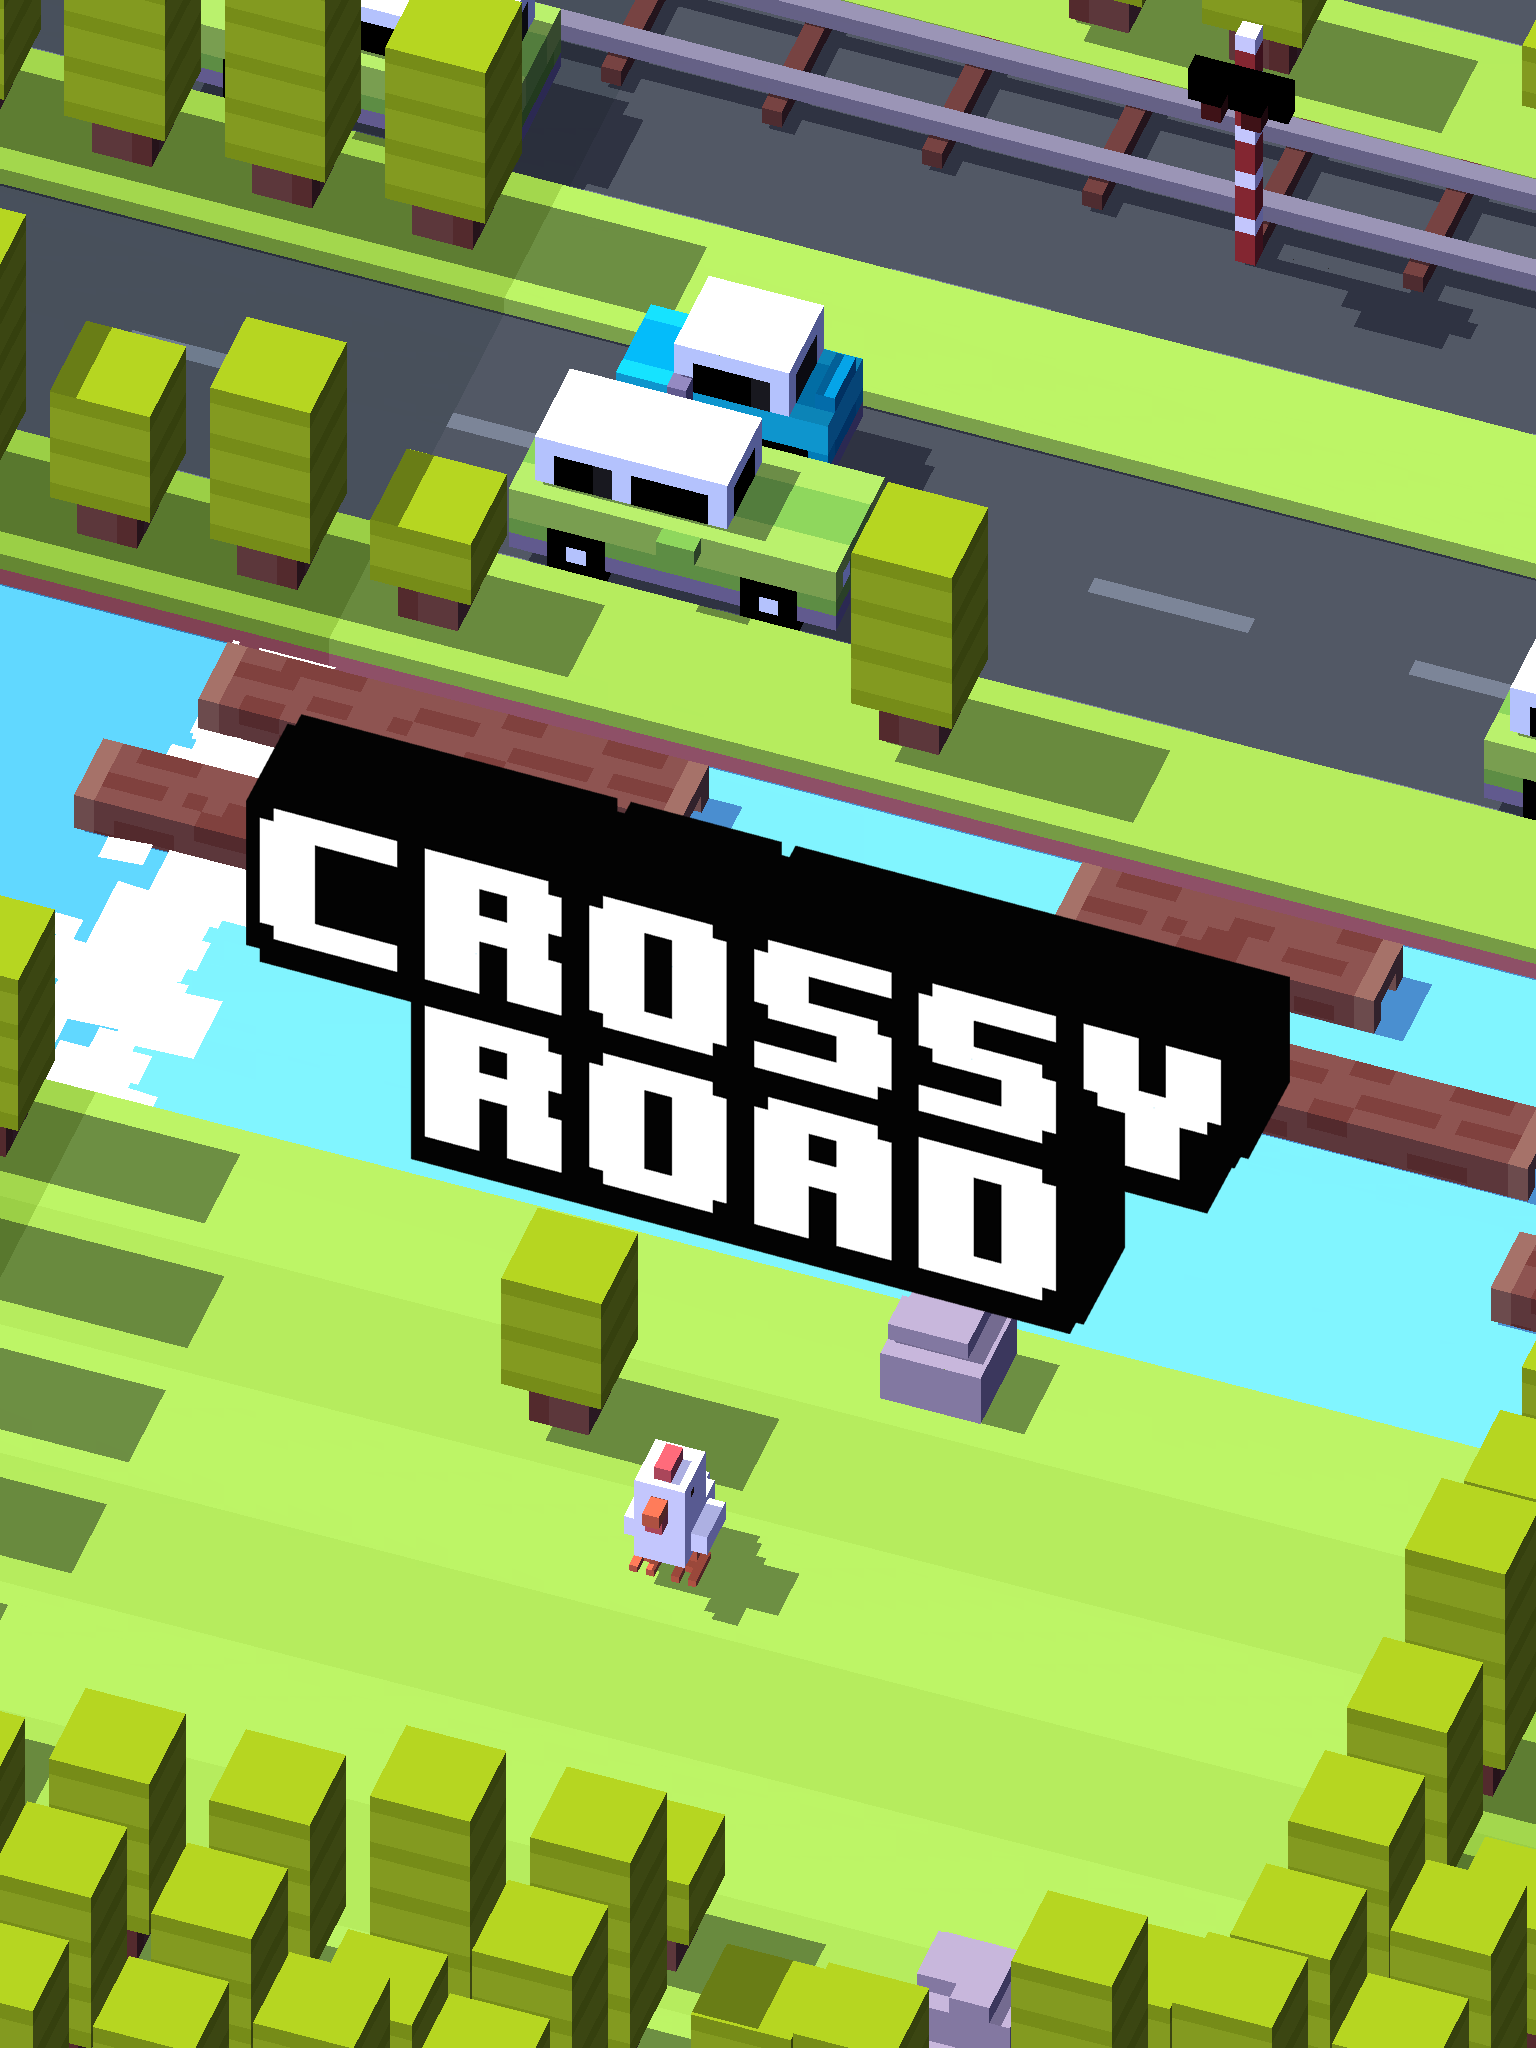 Pin by stefanny stewart on Game Hack and Cheats Crossy